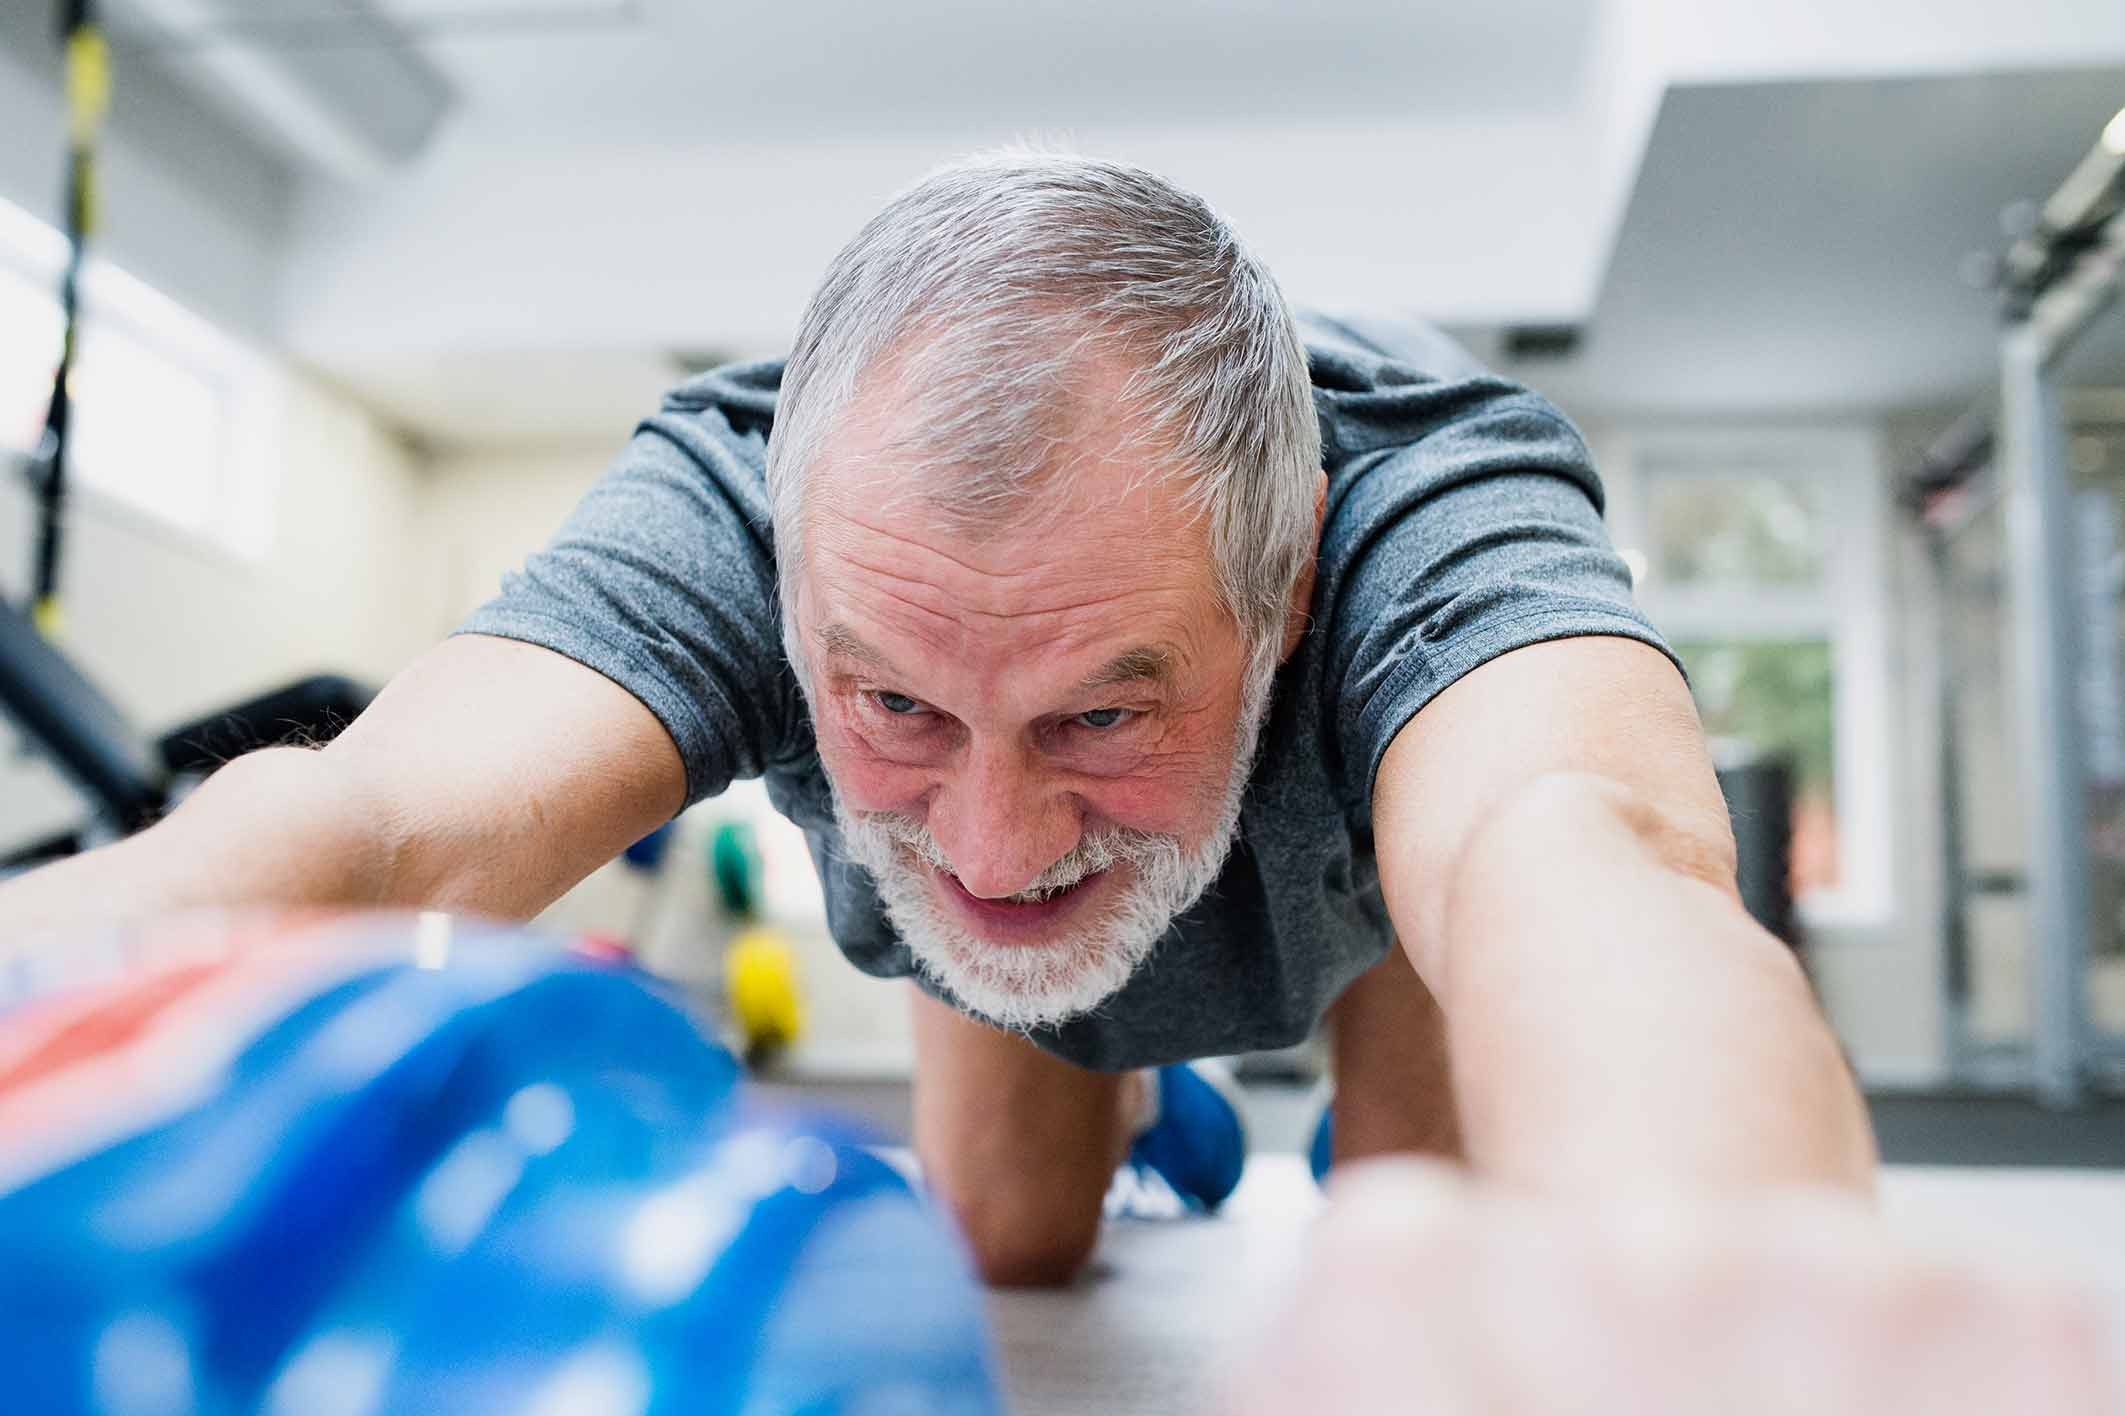 7 Good Or Bad Exercises For Back Pain